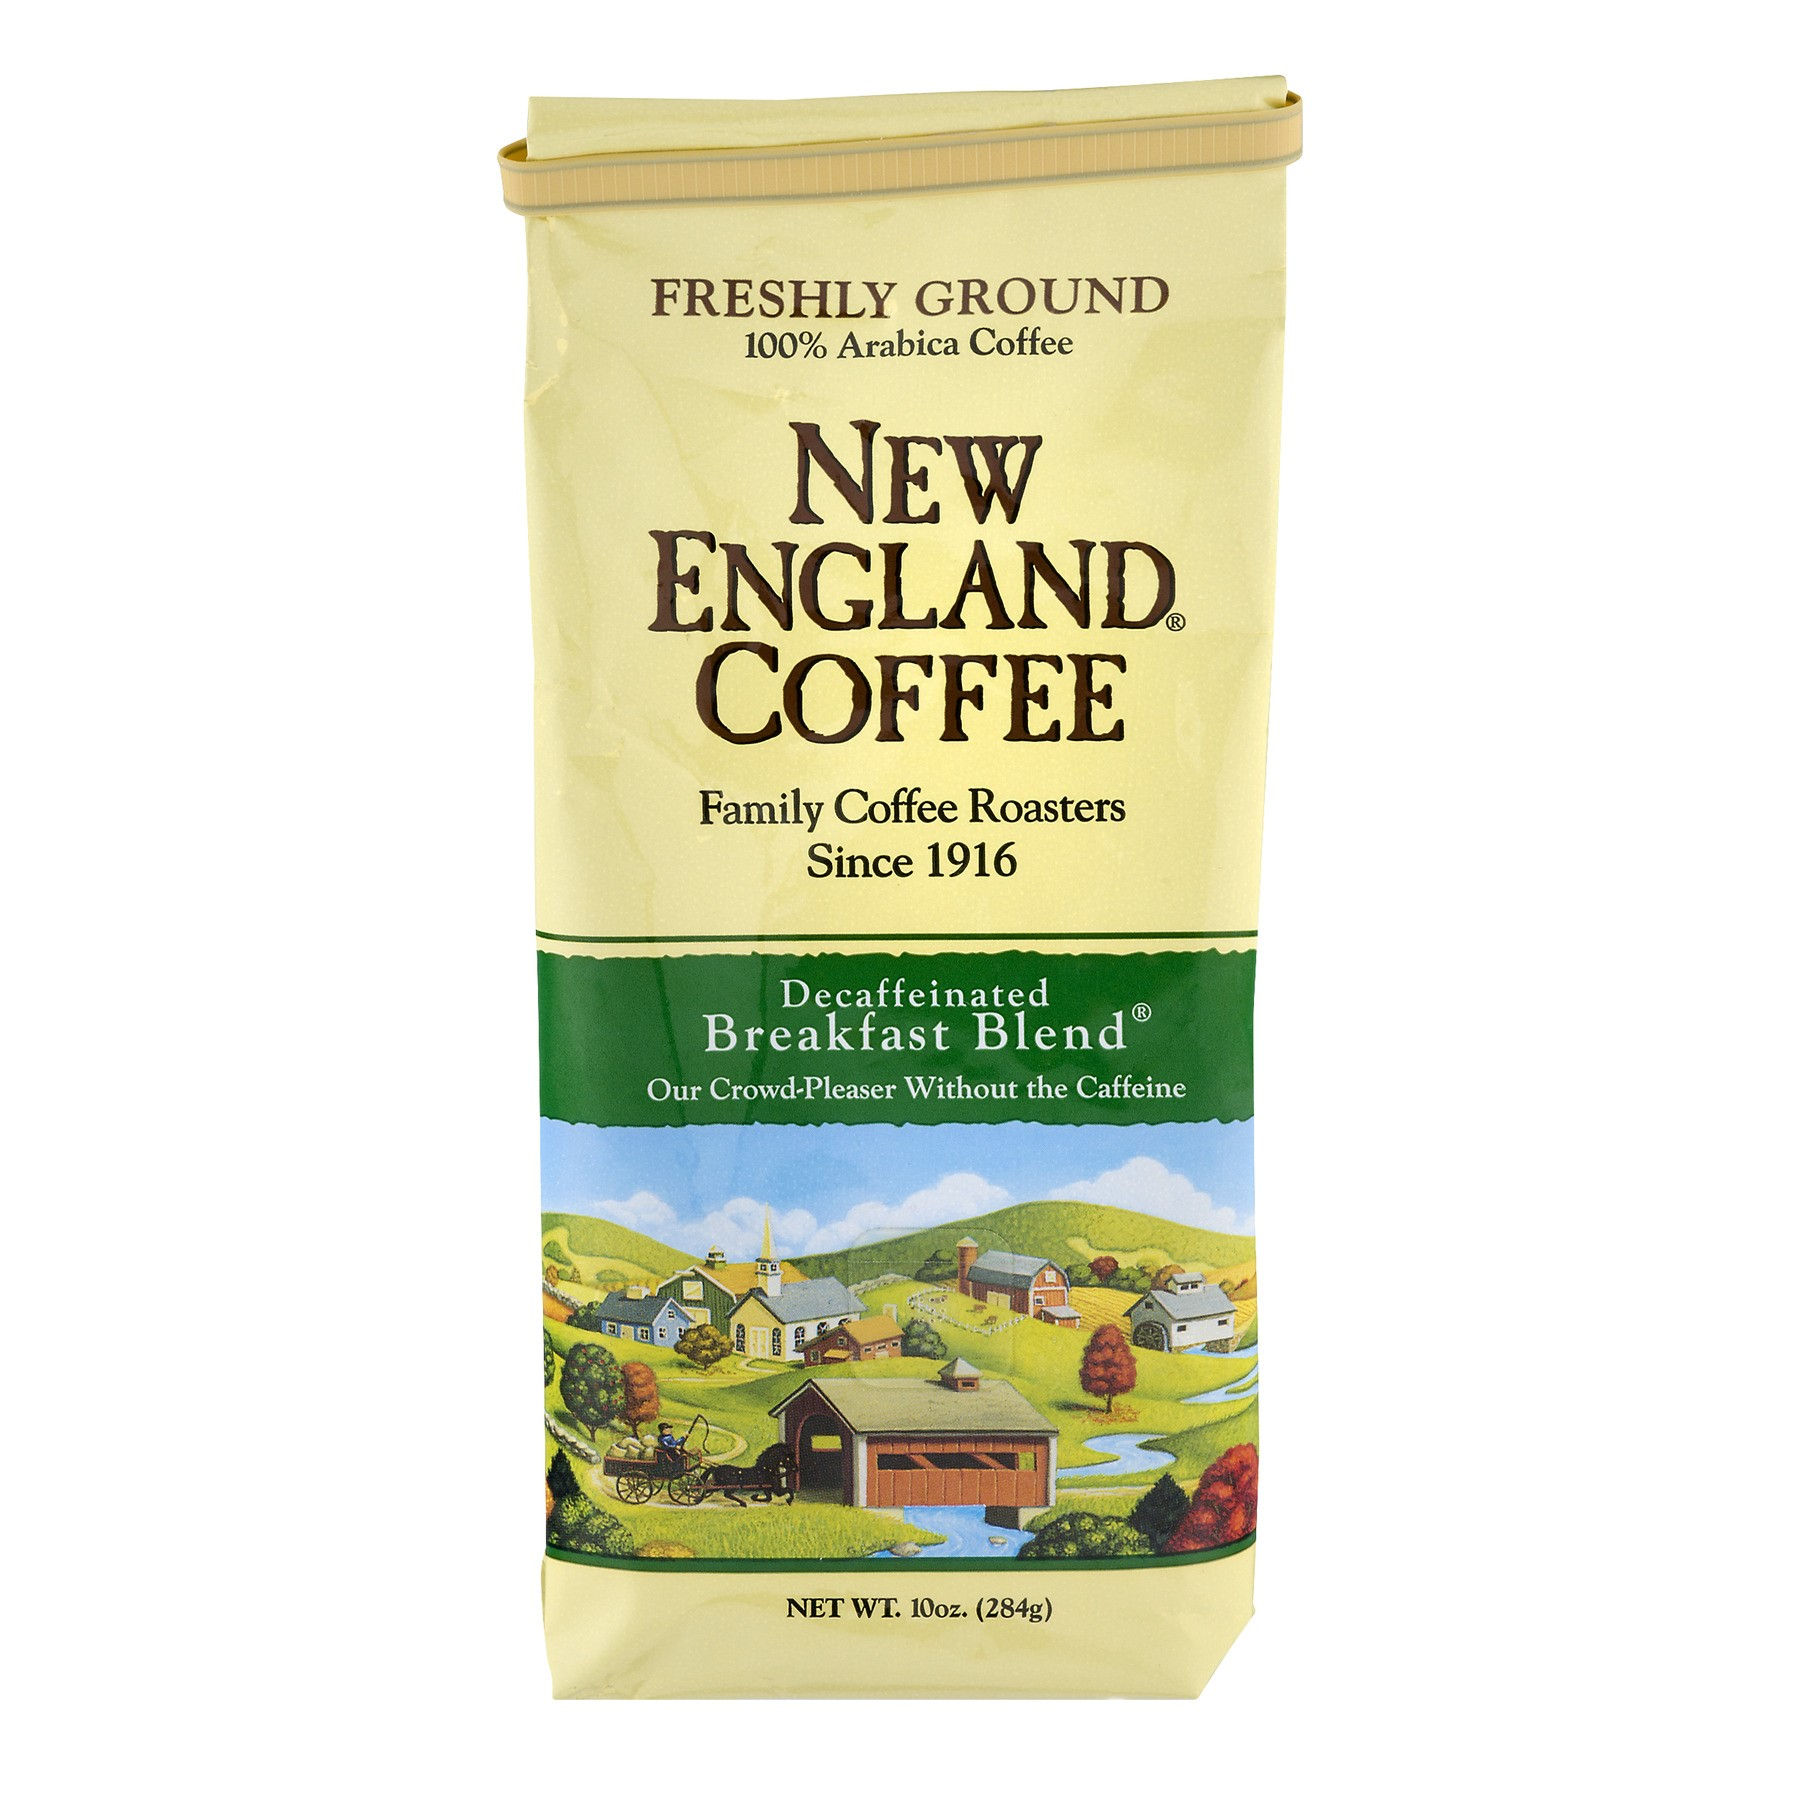 New England Coffee Decaffeinated Breakfast Blend Freshly Ground 10.0 OZ